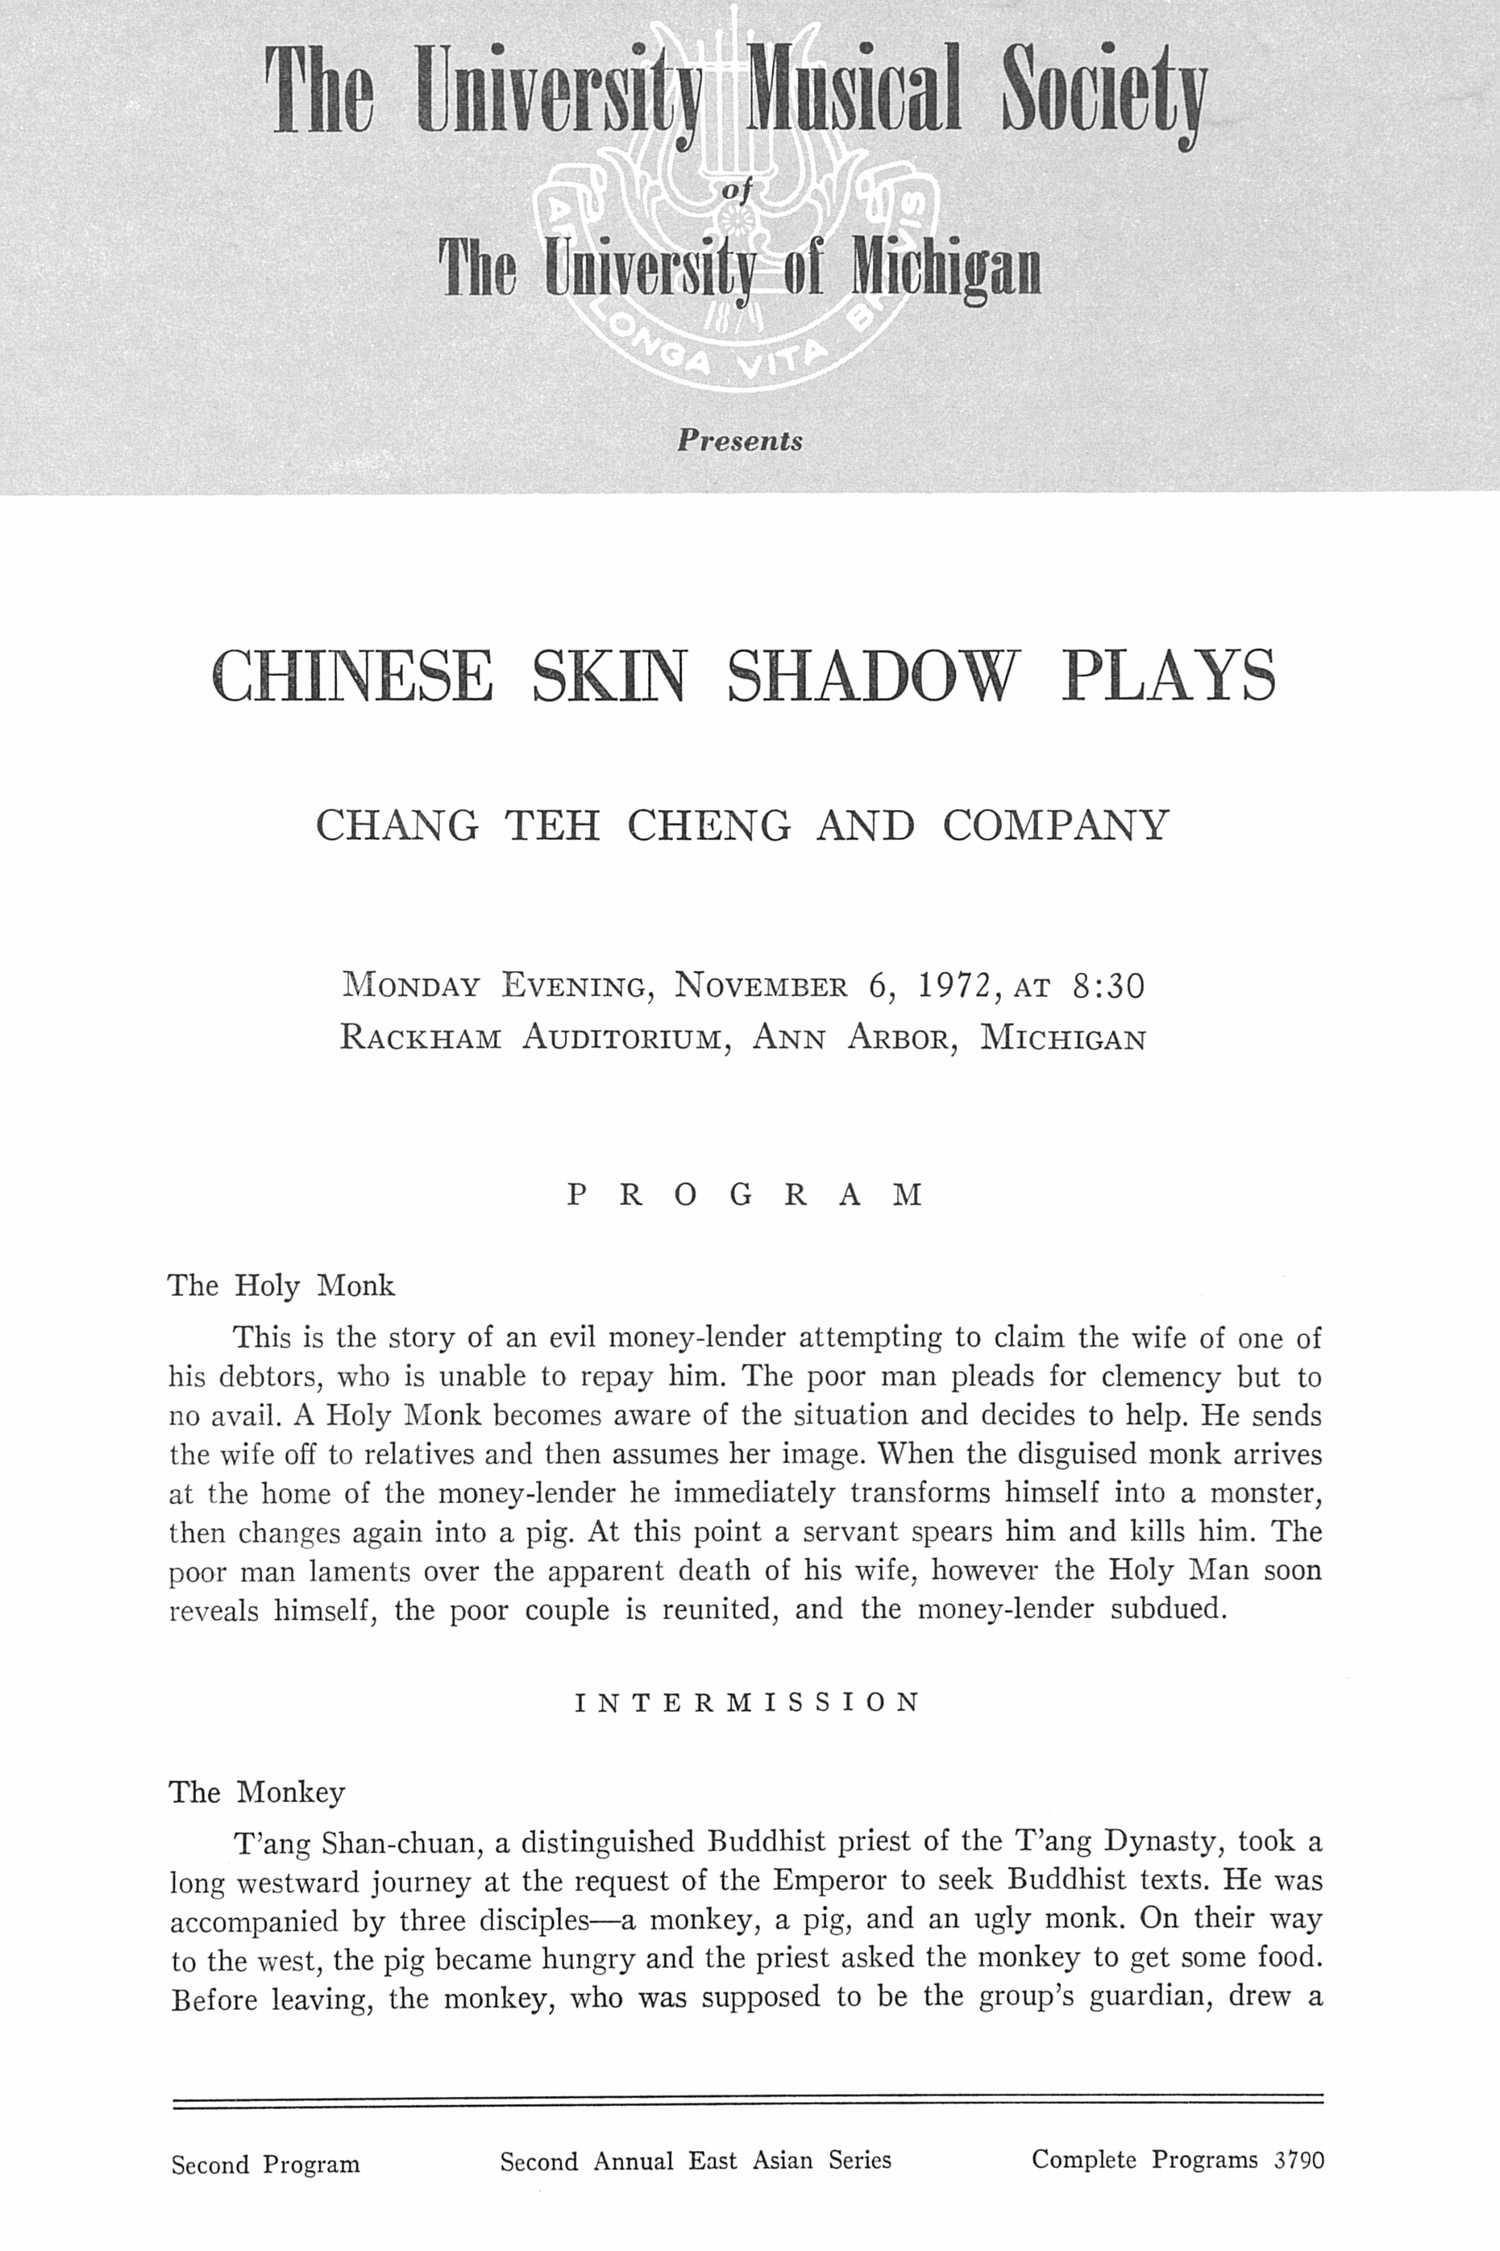 UMS Concert Program, November 6, 1972: Chinese Skin Shadow Plays -- Chang Teh Cheng And Company image